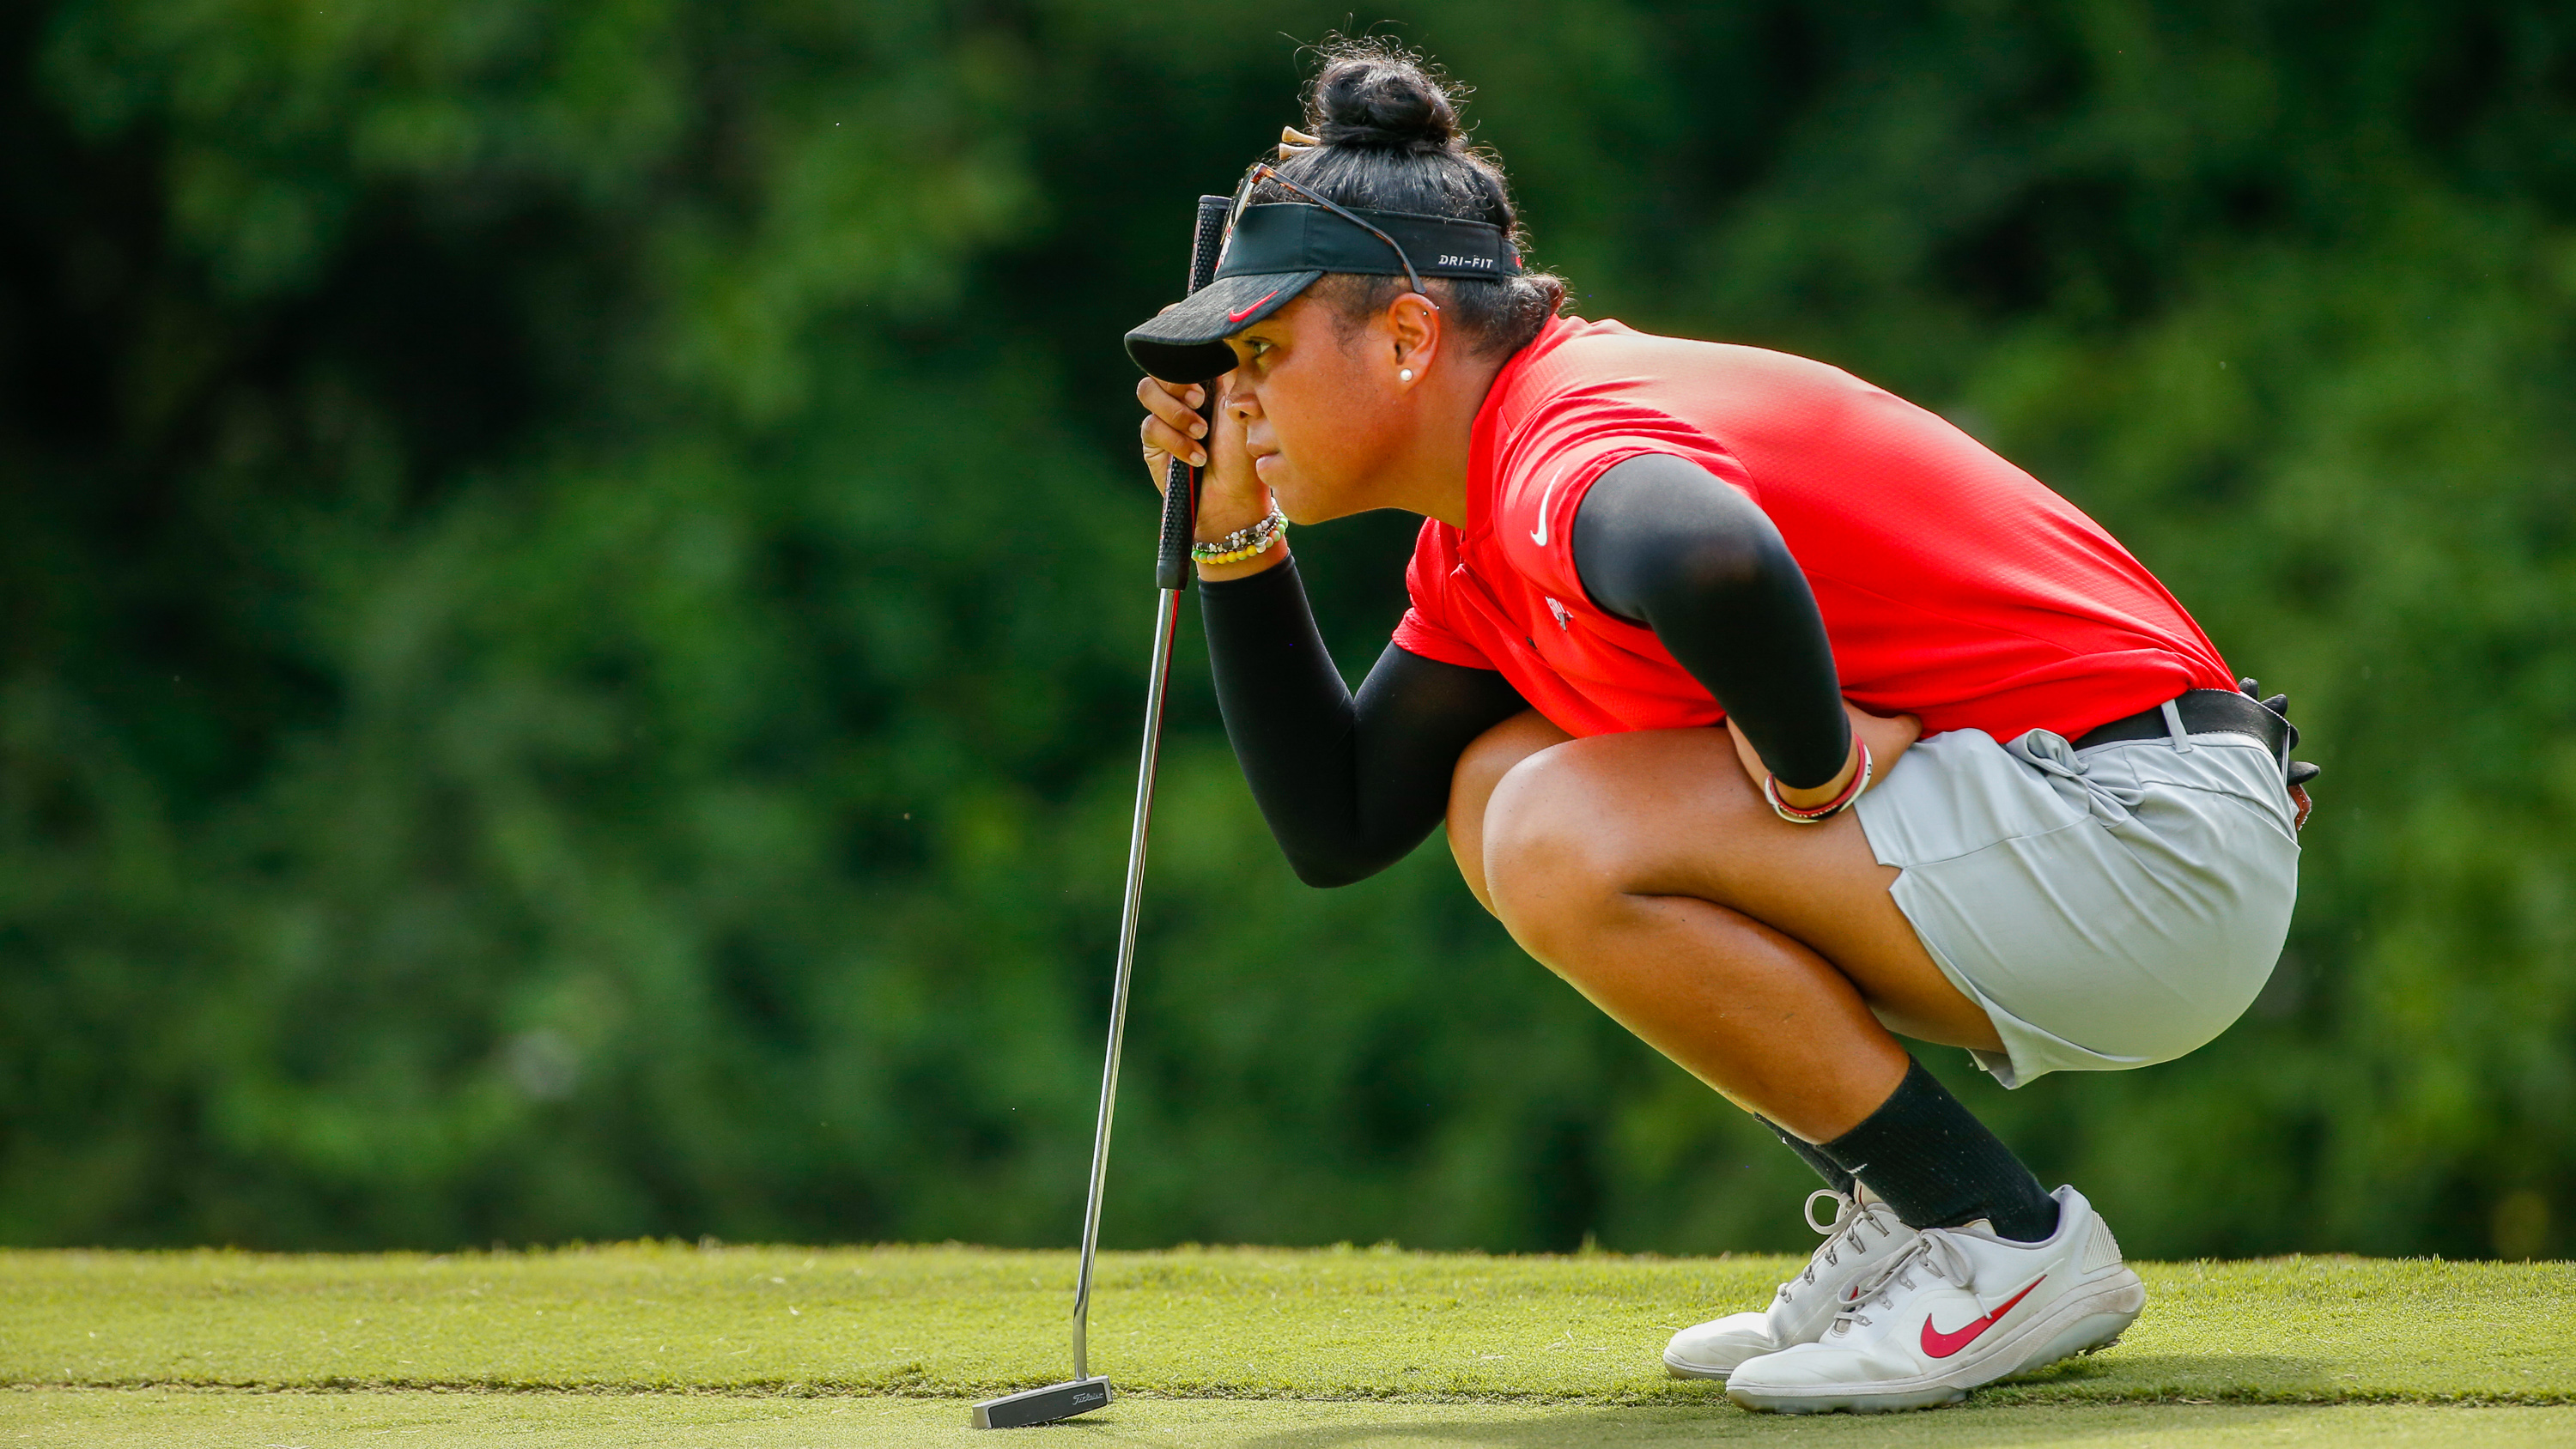 http://res.cloudinary.com/usga/image/upload/v1/usga/images/championships/2019/womens-amateur/galleries/thursday/26_19WAM_0808_R8Q3363.jpg